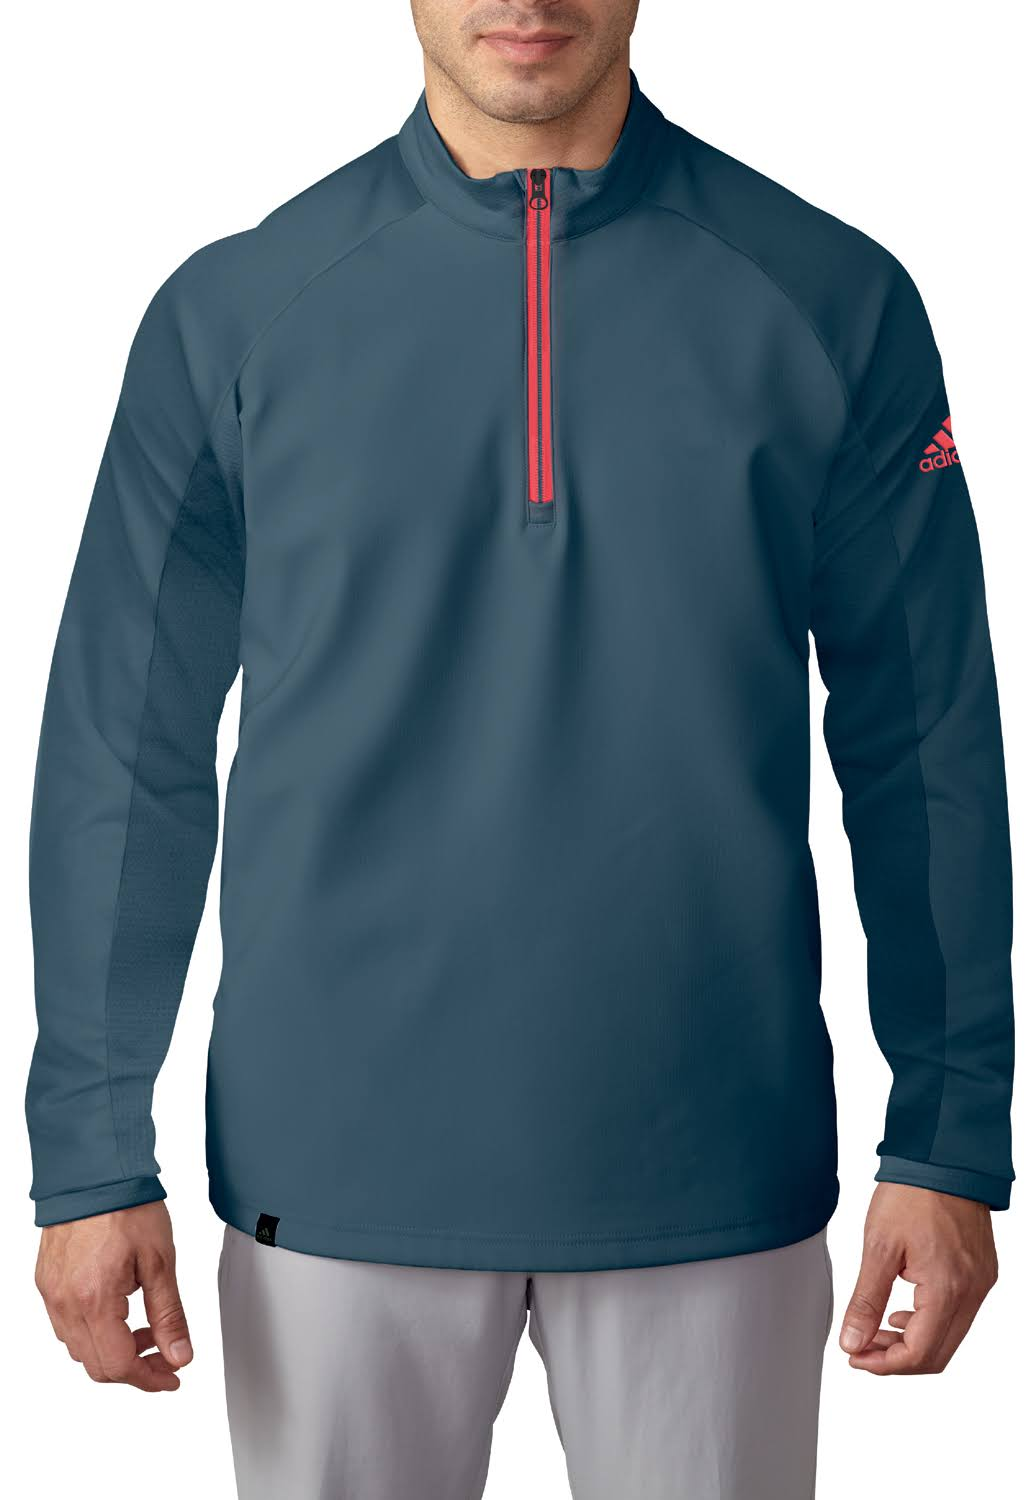 adidas Men's Climacool Competiton 1/4 Zip Pullover